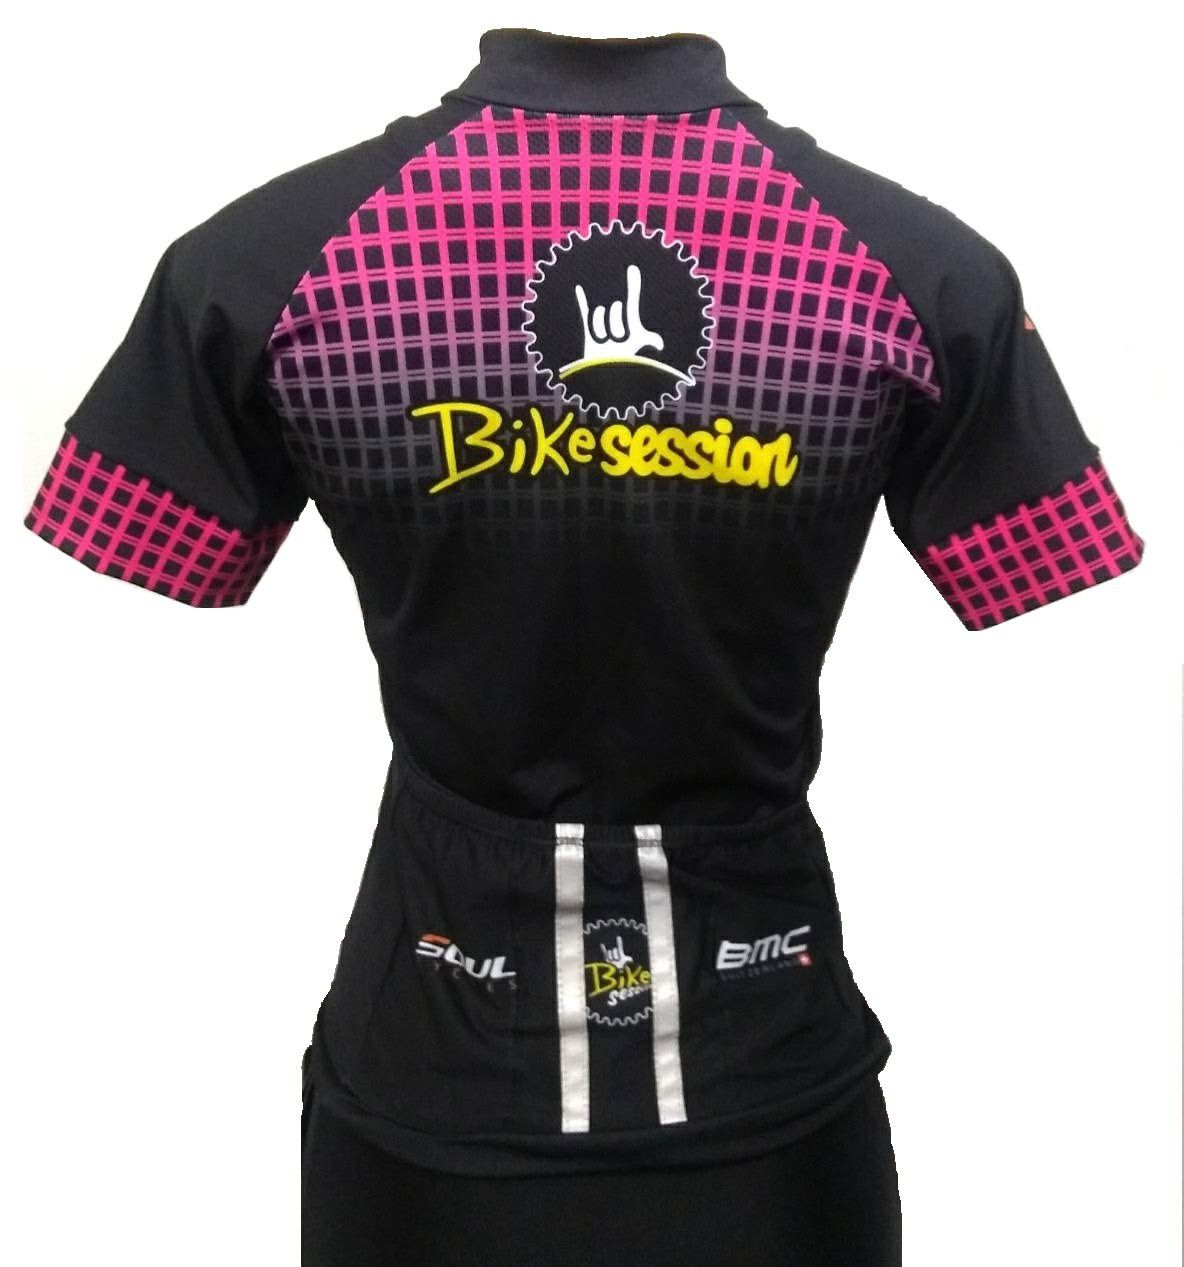 Camisa Ciclismo Bike Session Manga Curta Fem.